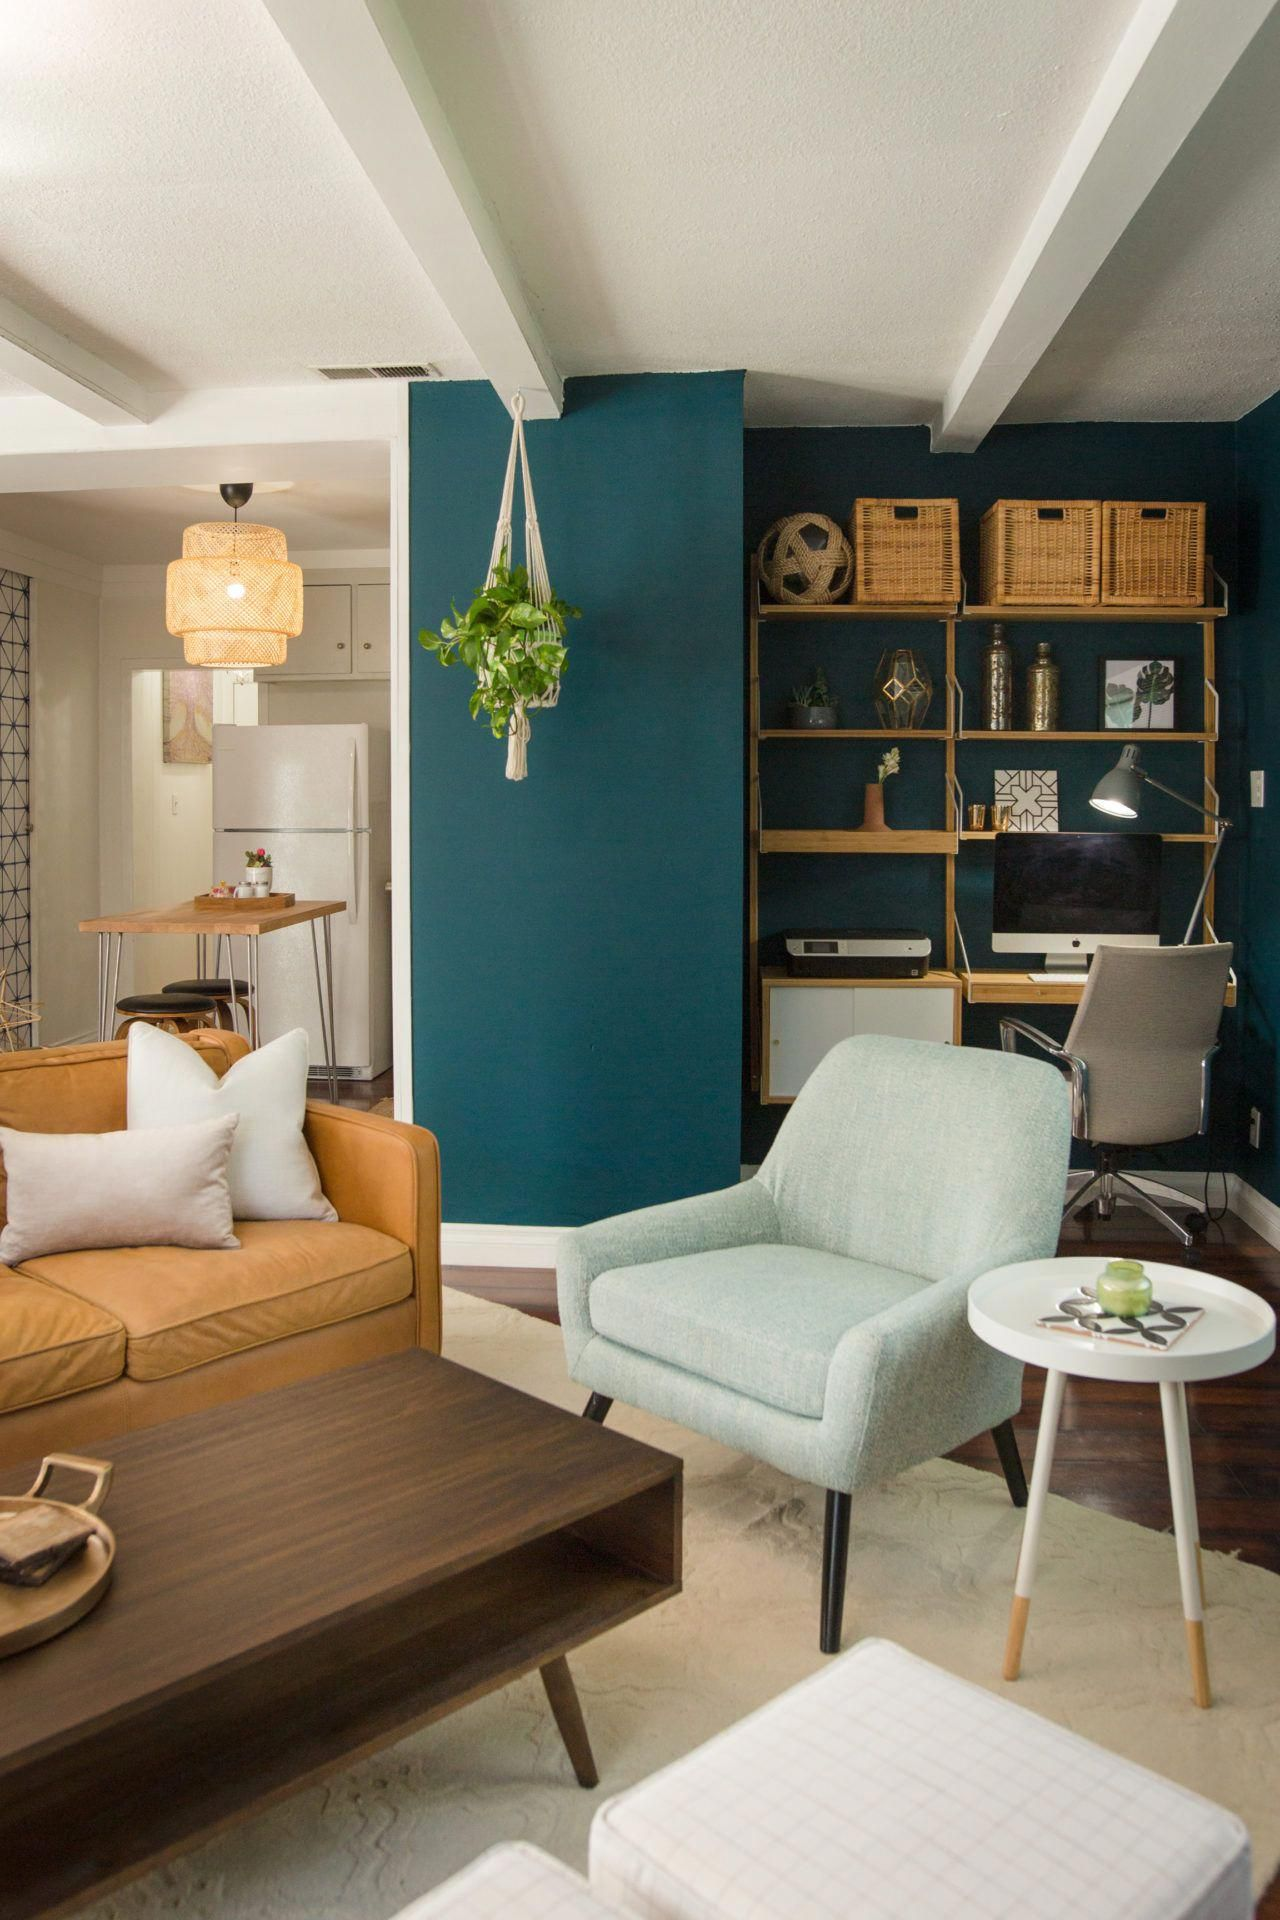 The Shades Of Green And Teal Play Off Of Mixed Wood Tones And A Leather Sofa To Make A Color P Teal Sofa Living Room Living Room Green Yellow Decor Living #teal #sofa #living #room #decor